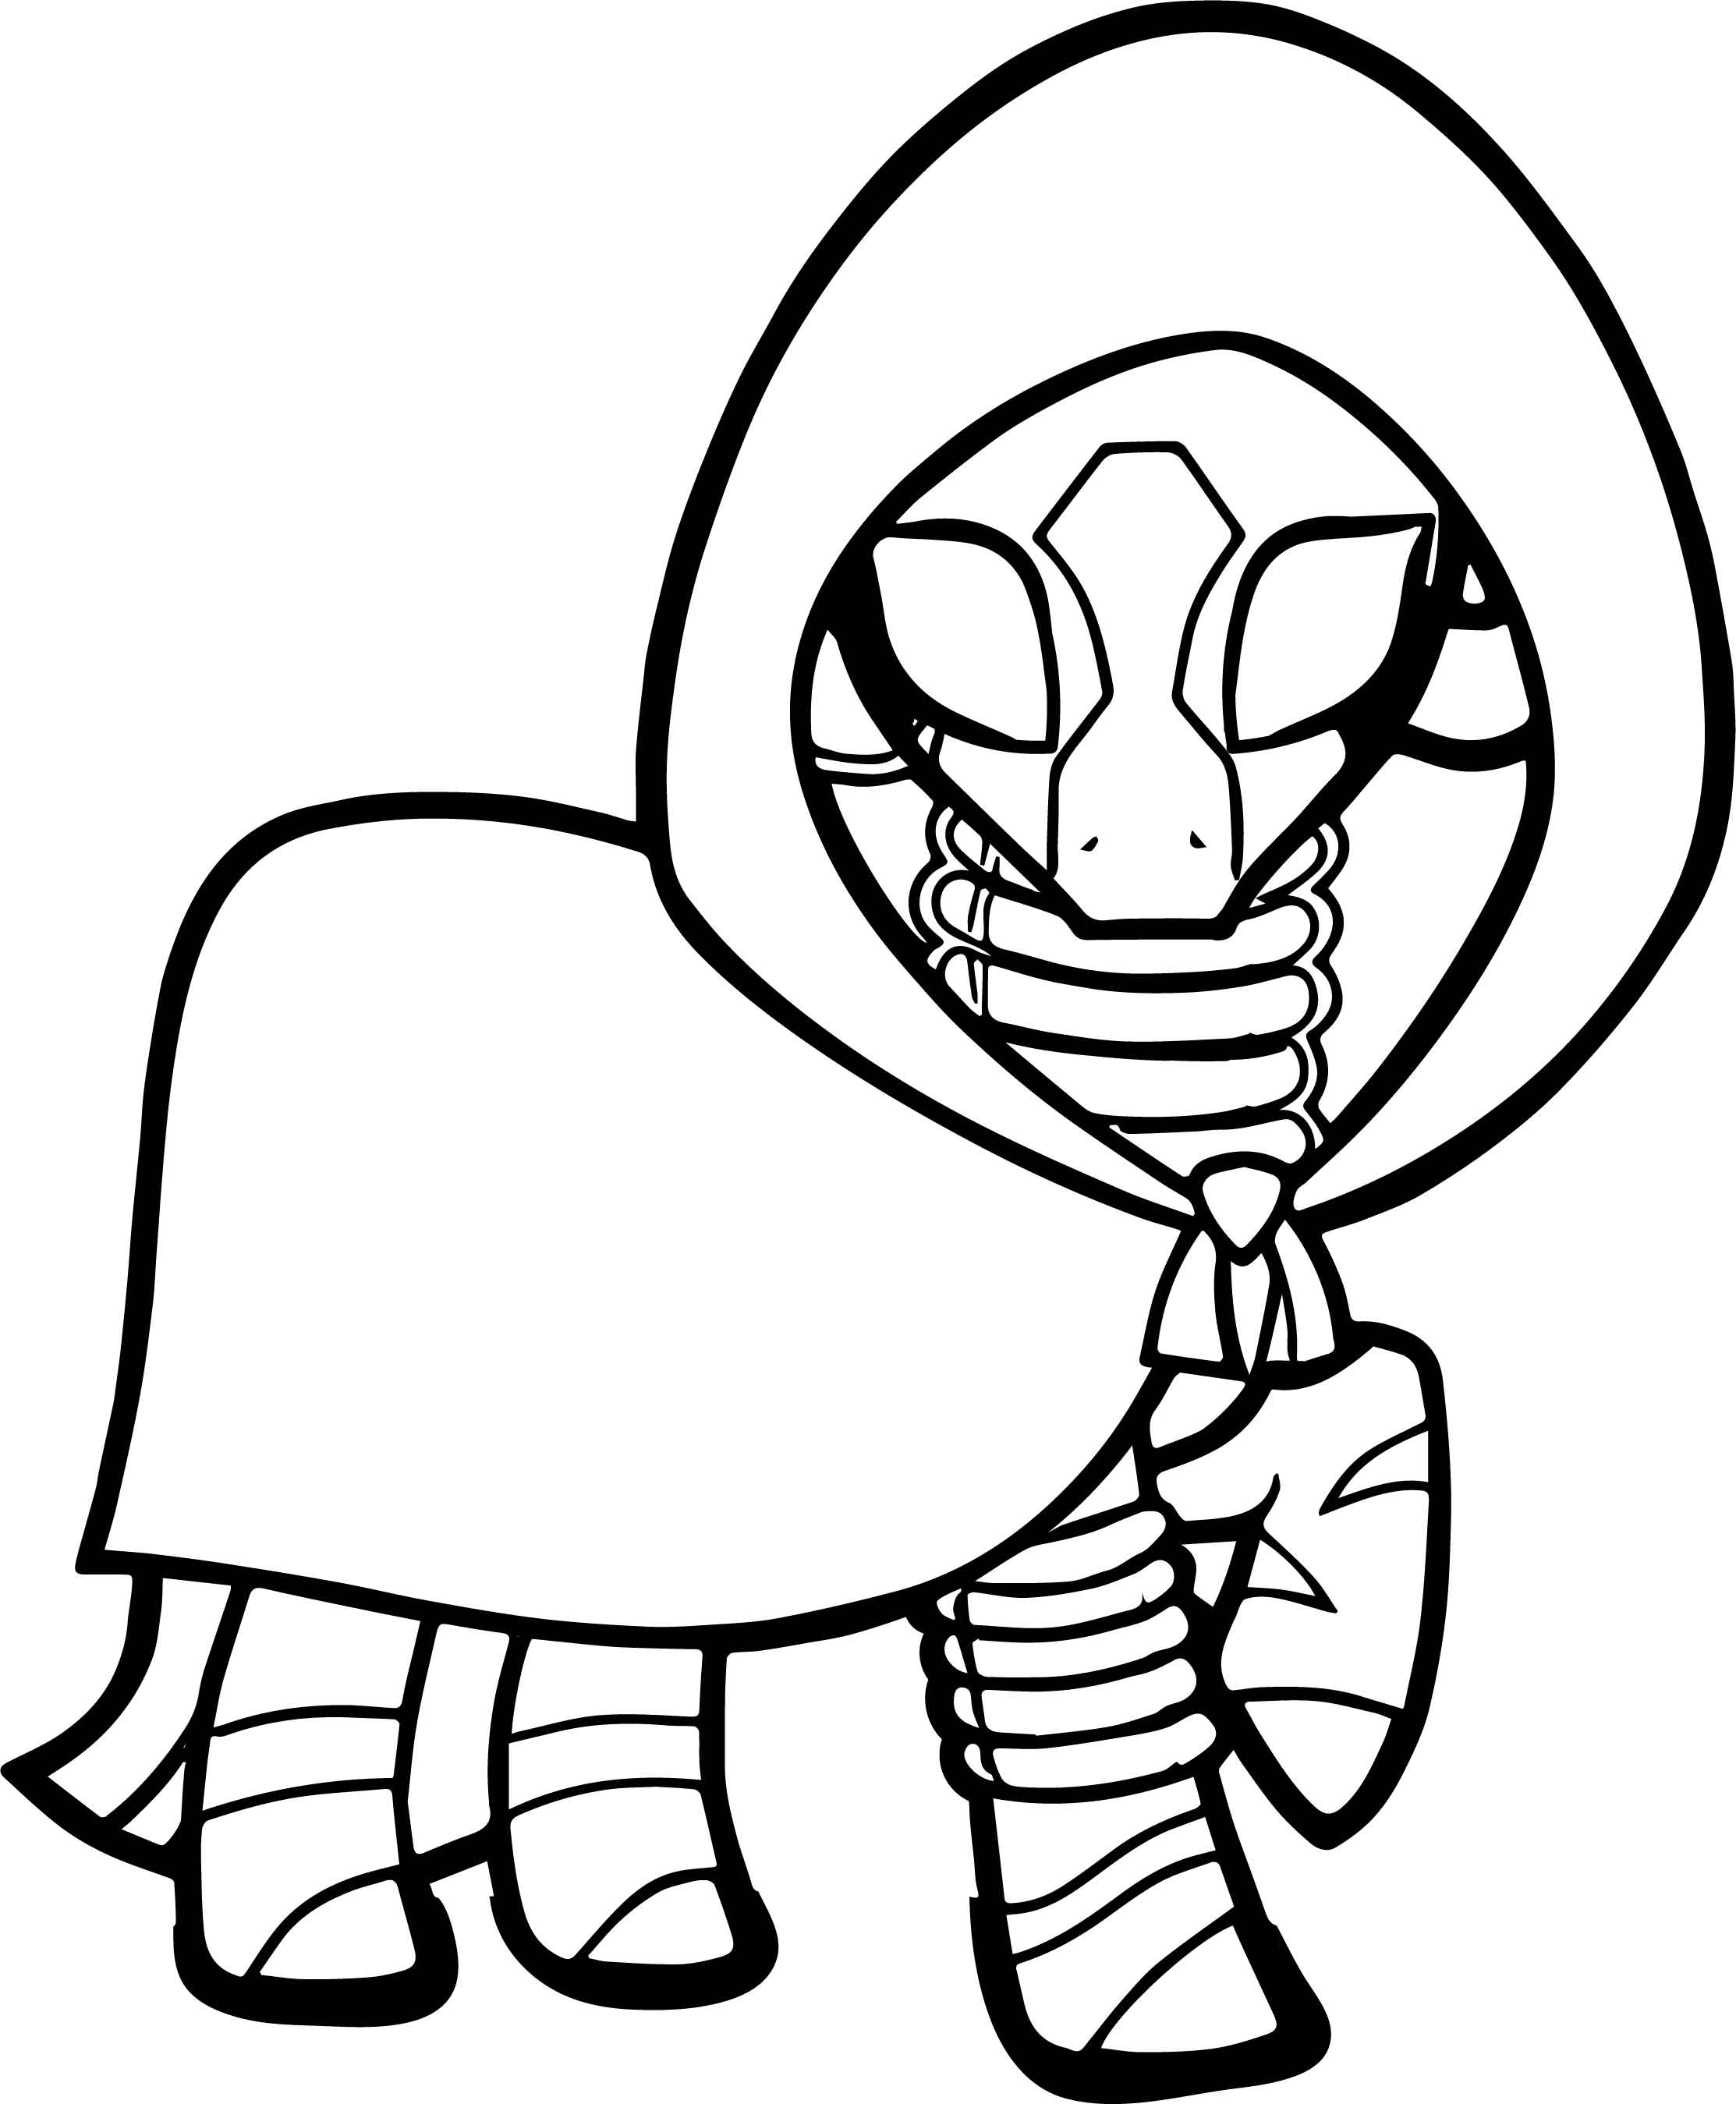 My Little Pony Zecora Coloring Pages : Zecora the zebra my little pony friendship is magic